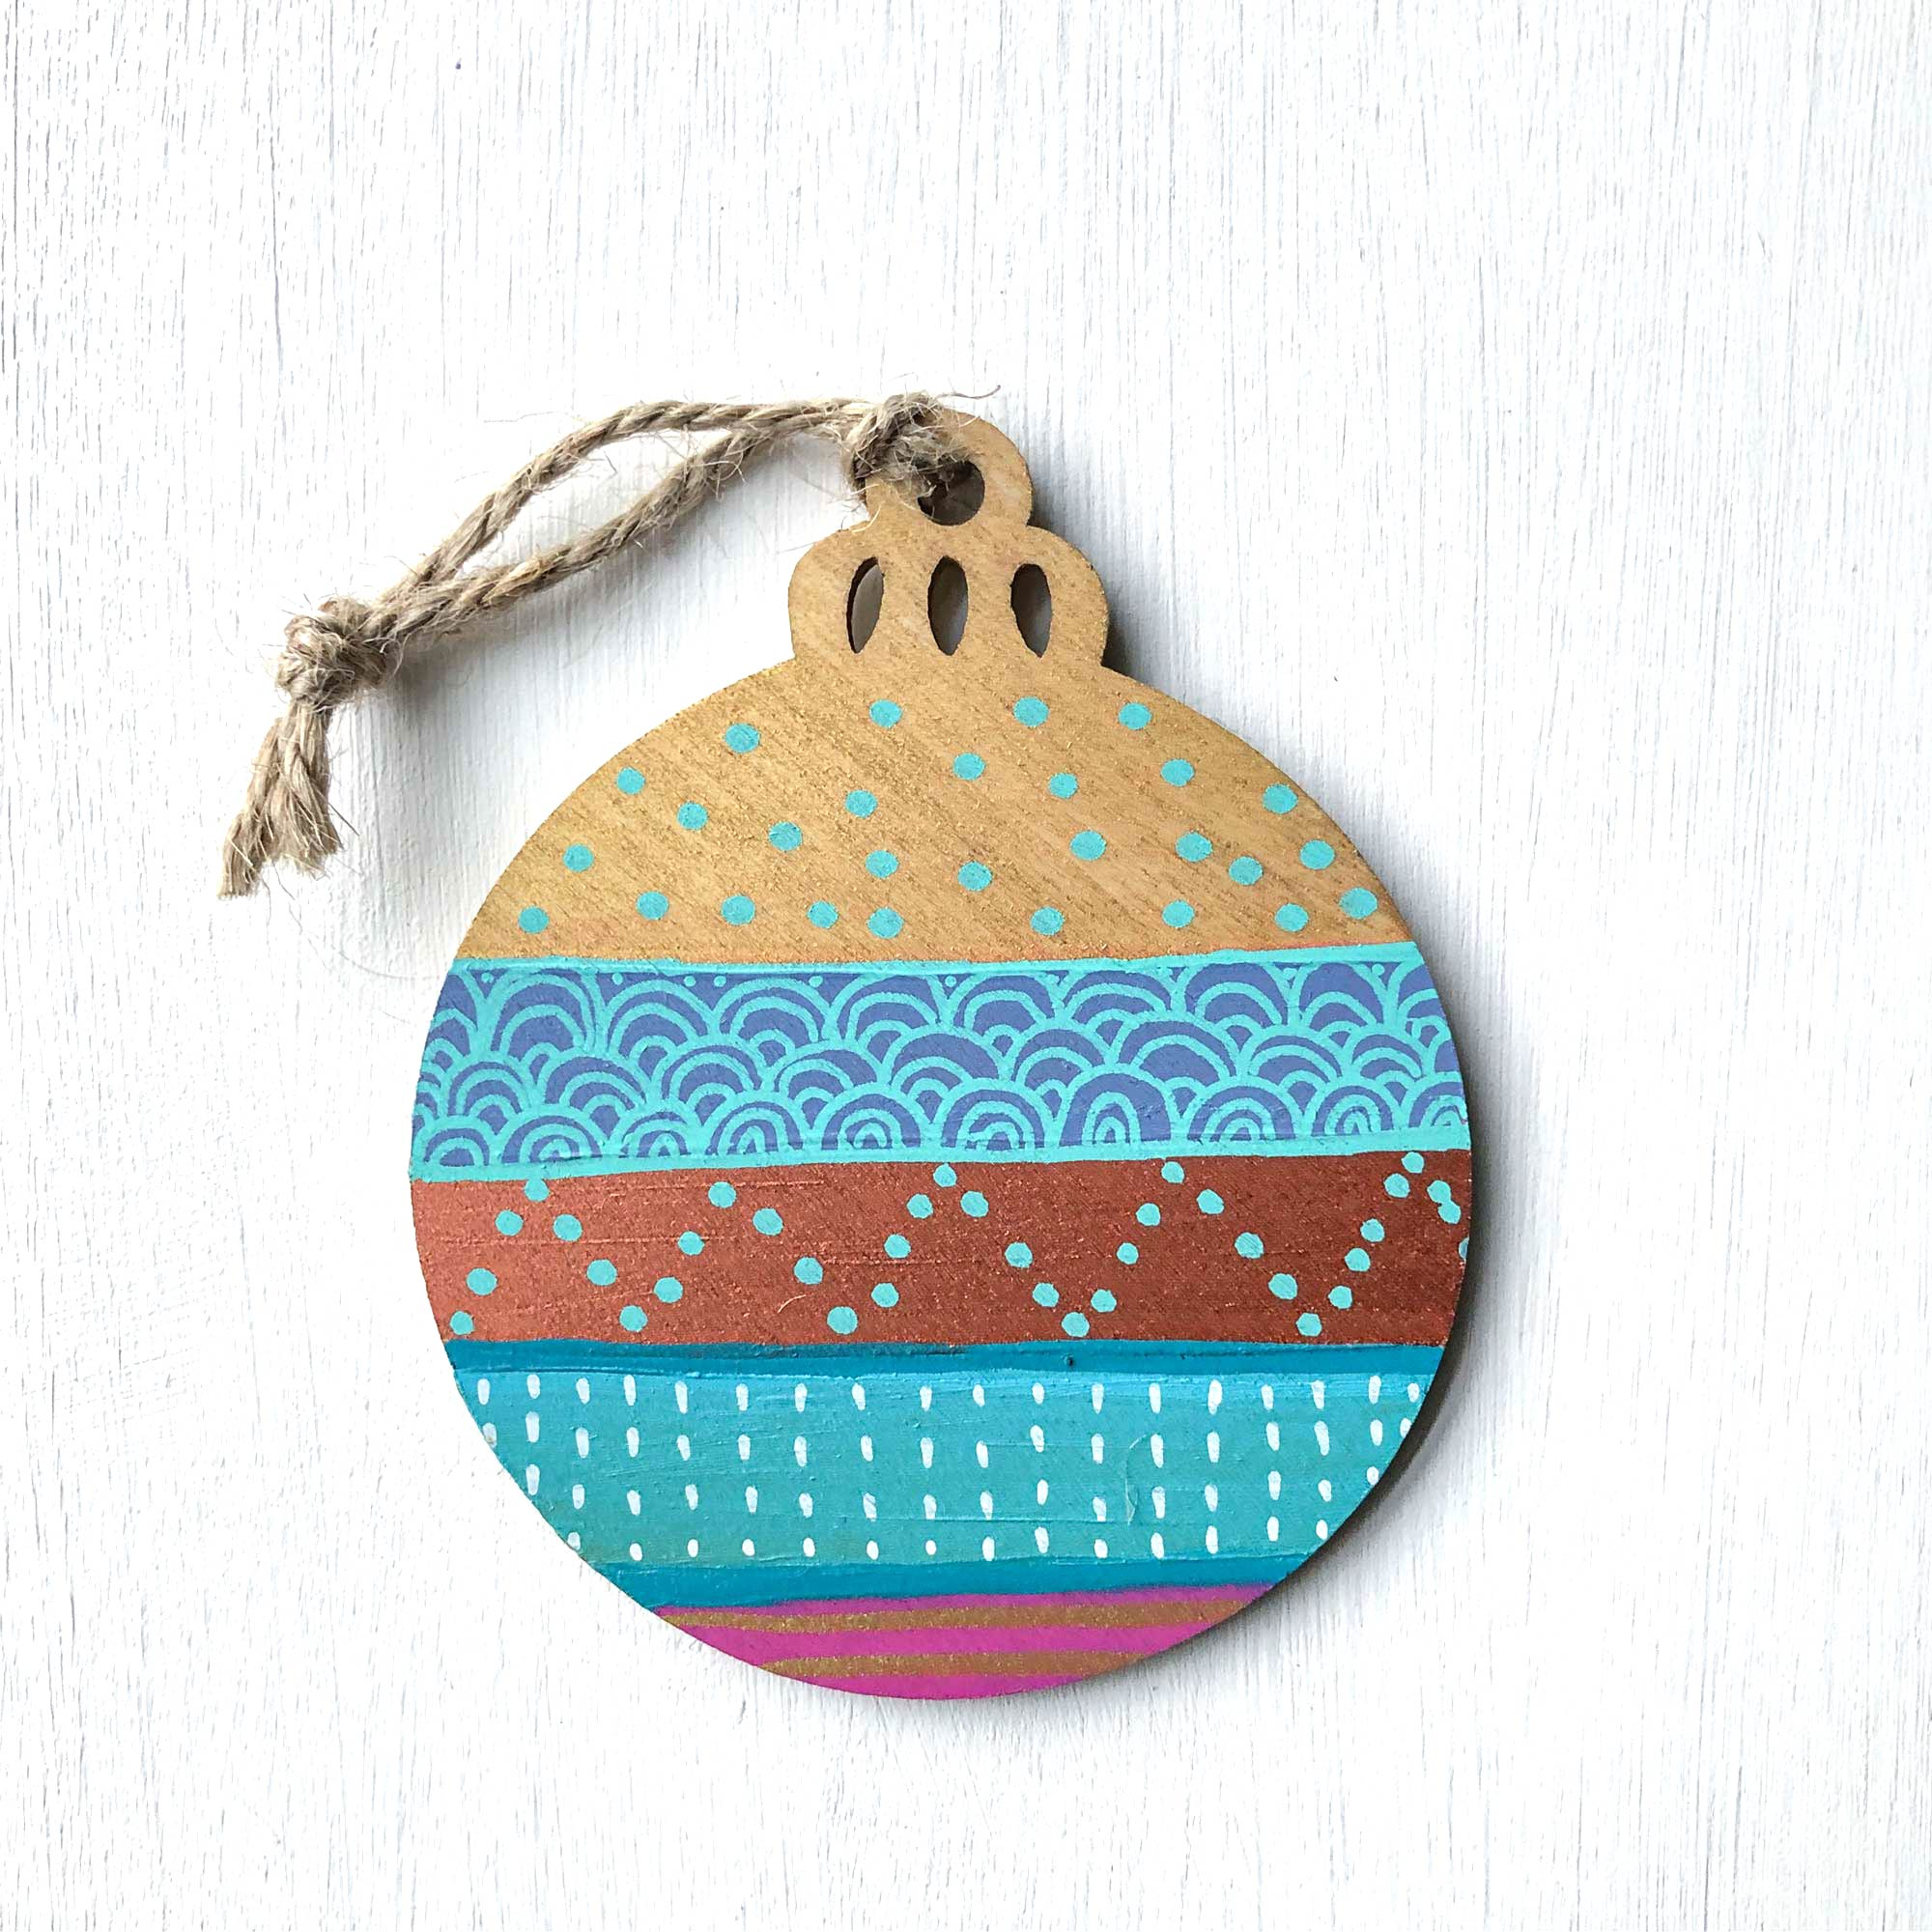 Hand-Painted Christmas Ornament XVII